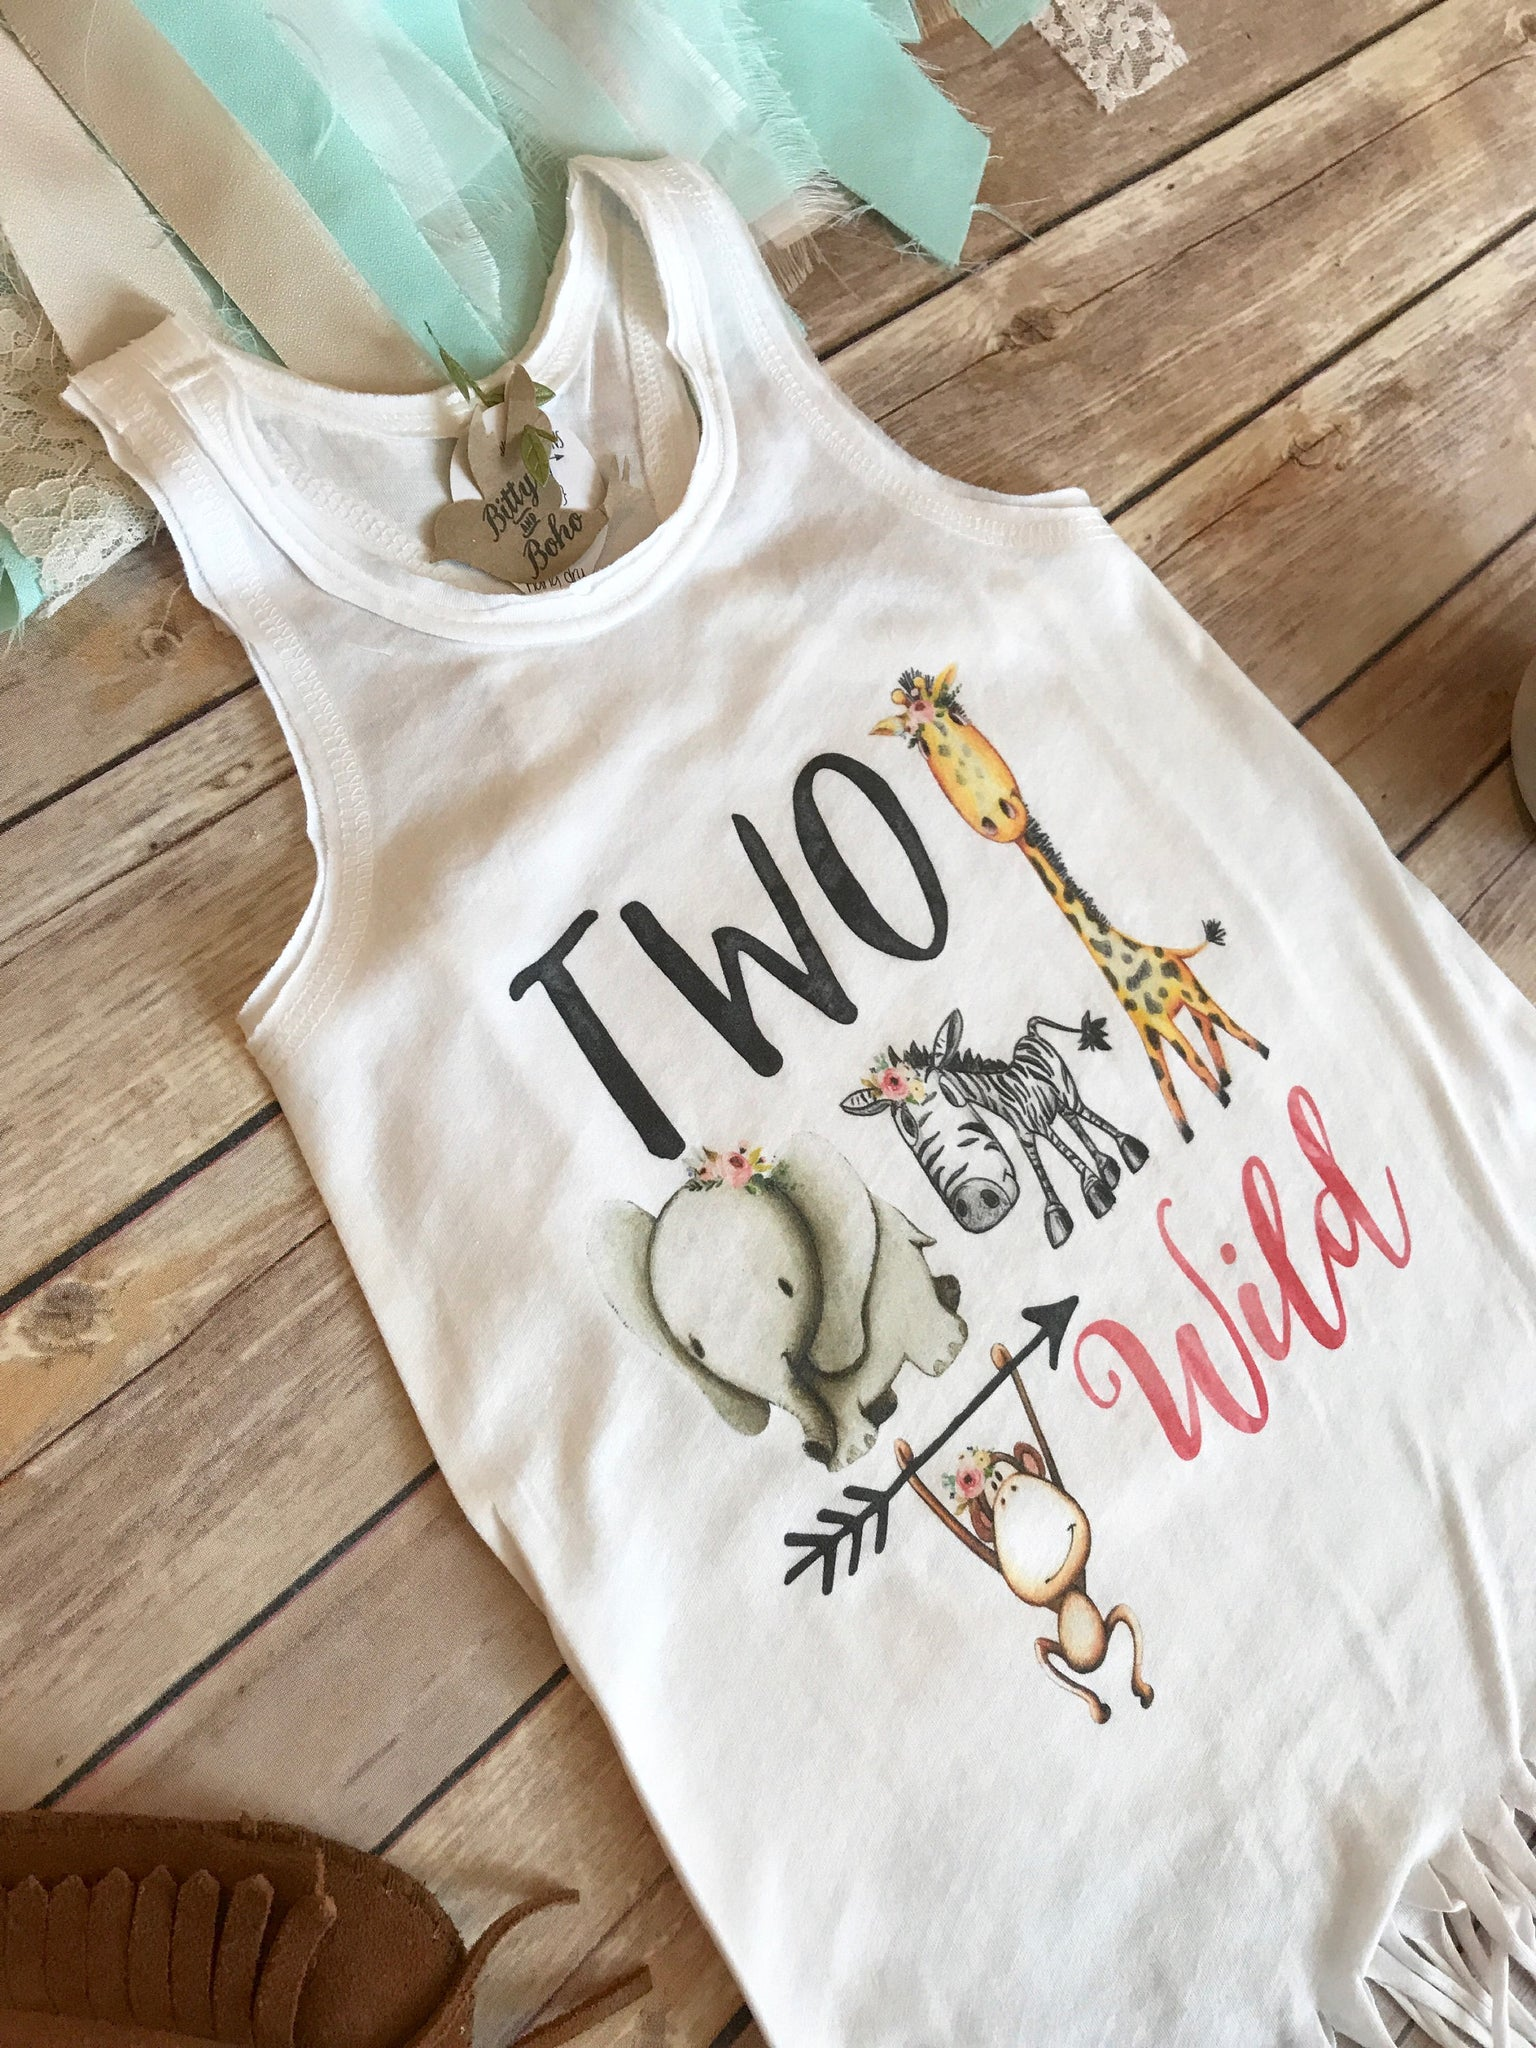 0d7a46b3a ... Second Birthday Outfit Girl, Two Wild Shirt Dress, 2nd Birthday Outfit  Girl, Zoo ...